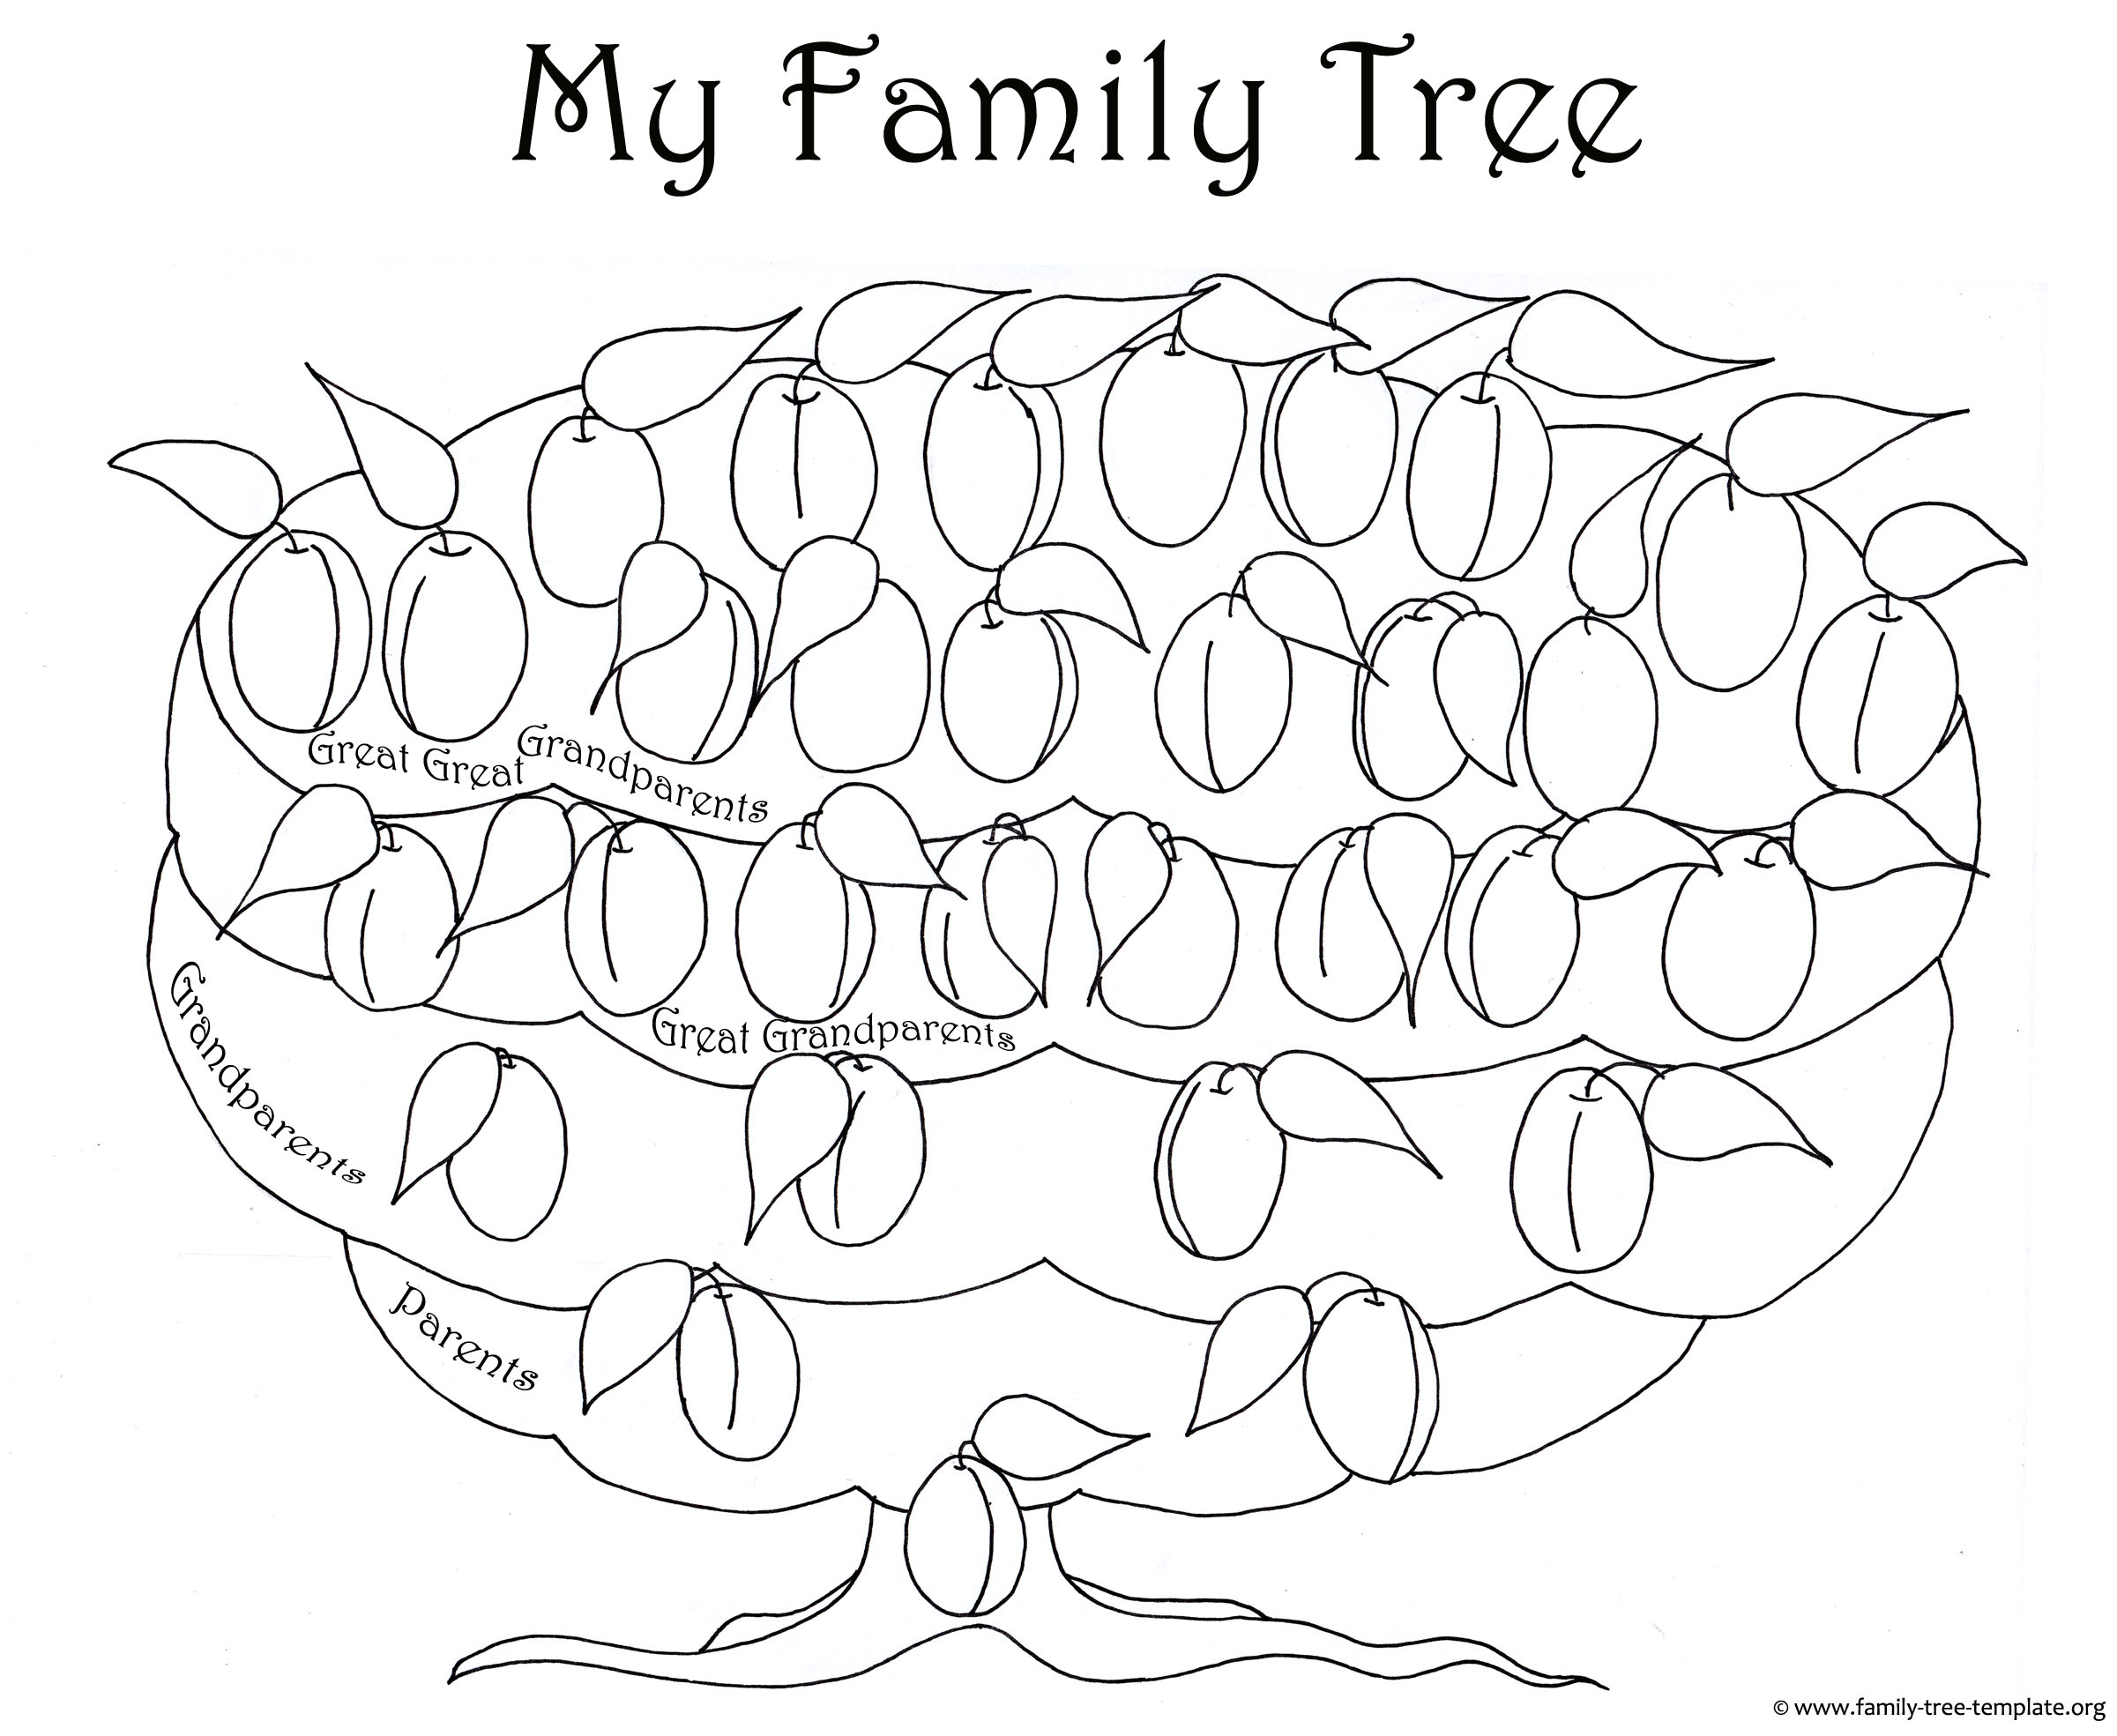 Worksheets Family Tree Worksheet For Kids blank family trees templates and free genealogy graphics the printable plum tree chart for kids to color